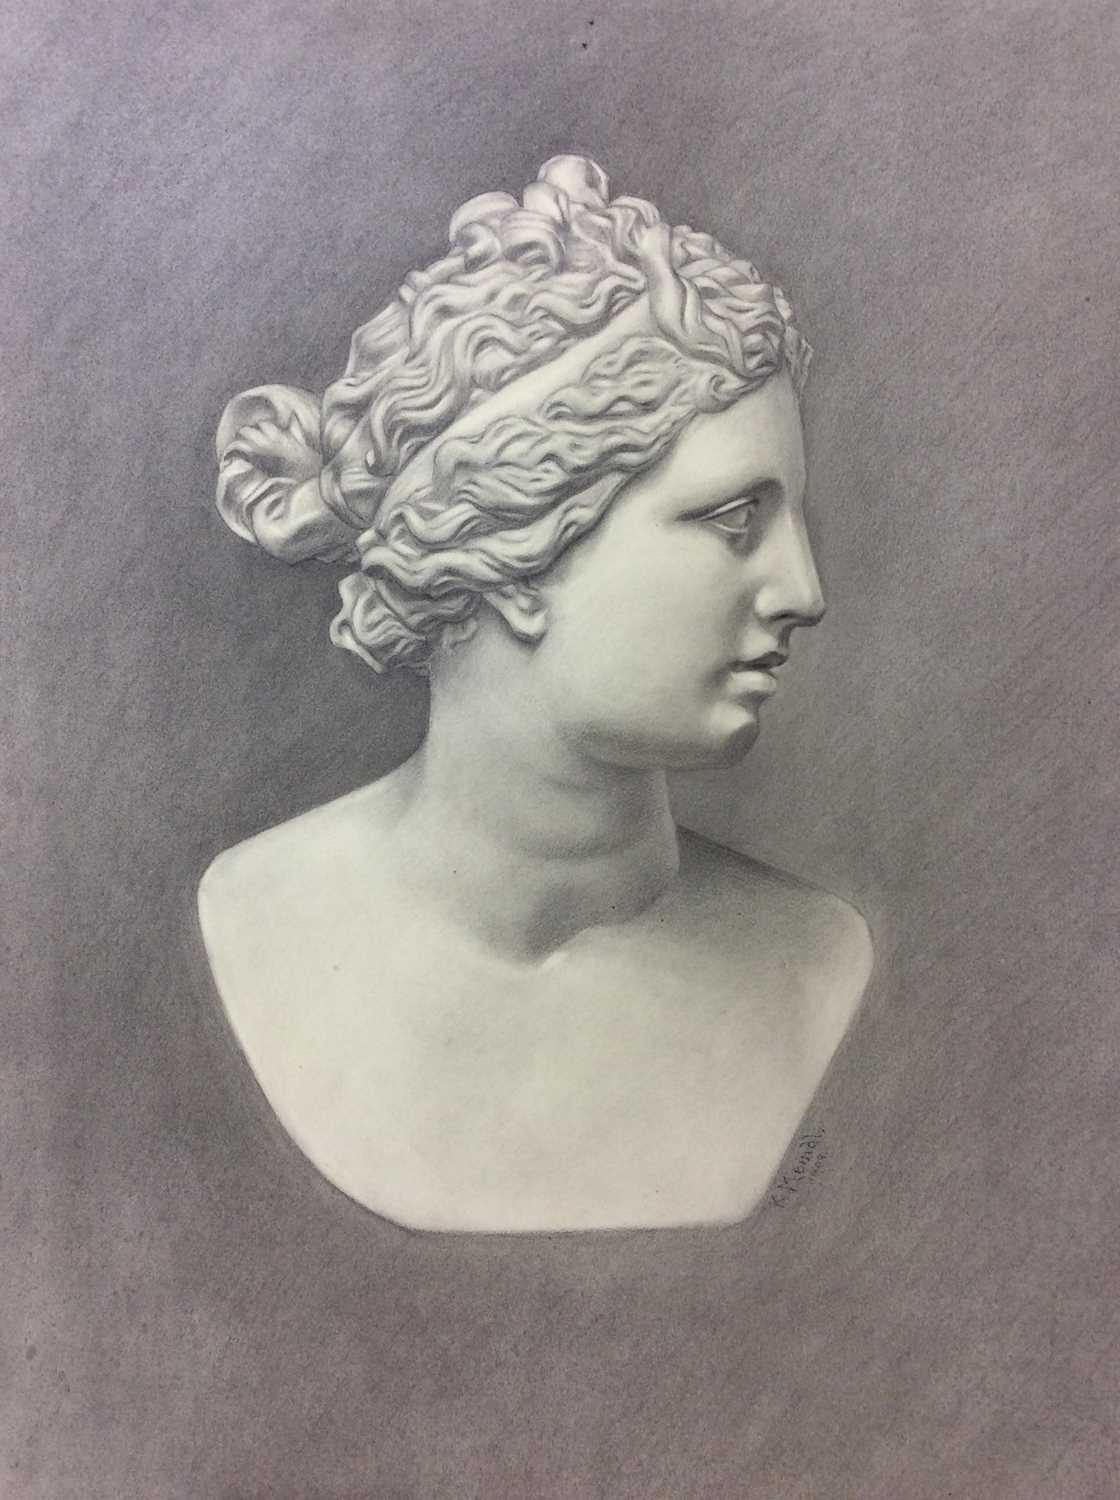 Konrad Meindl (1883-1970) group of eight charcoal works on paper - studies of Classical busts, each - Image 2 of 8